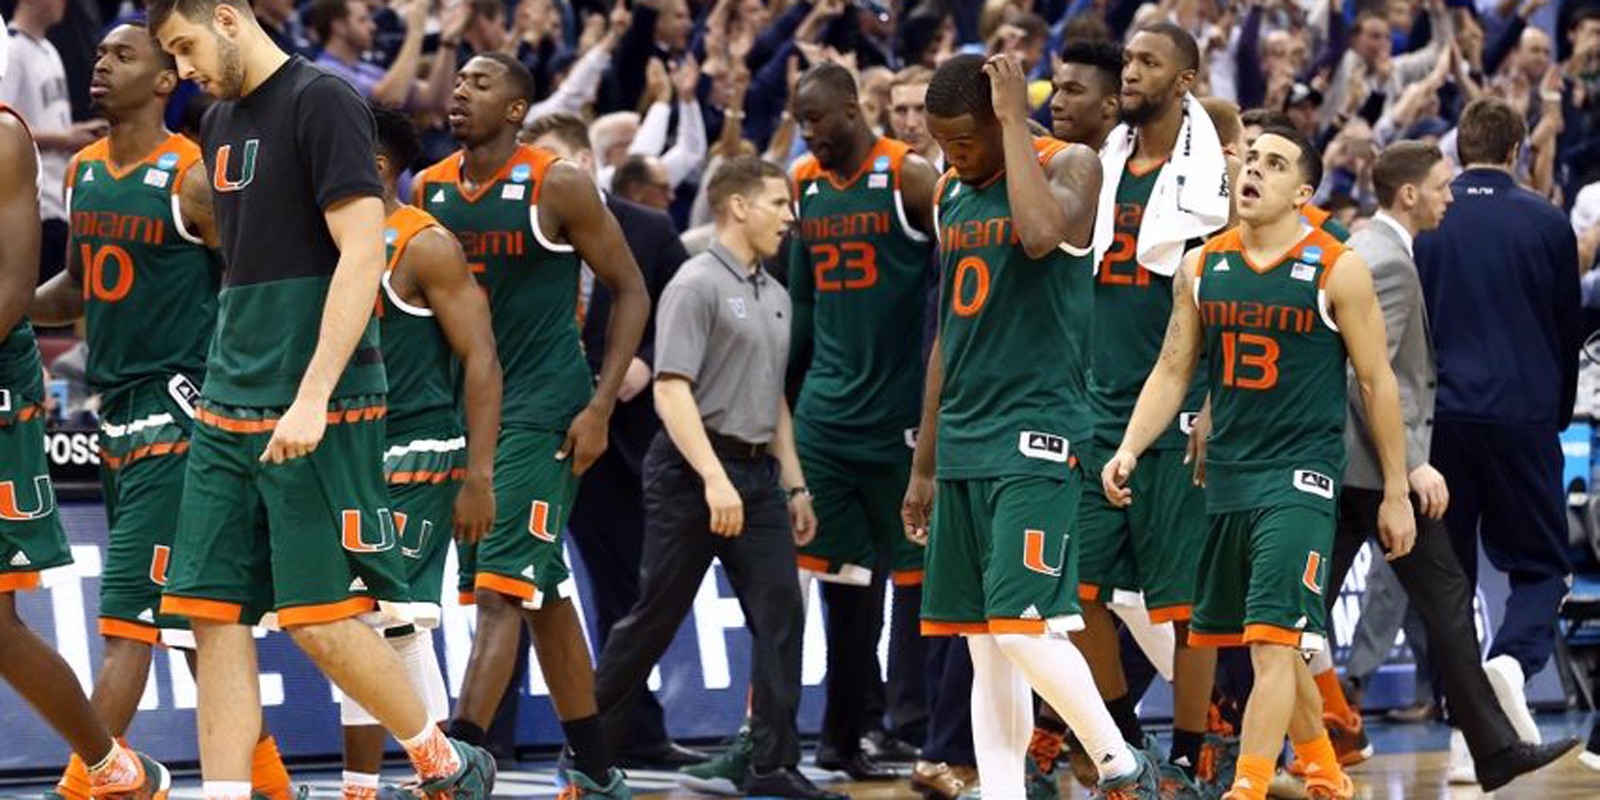 miami hurricanes basketball march madness the u villanova wildcats ncaa tournament